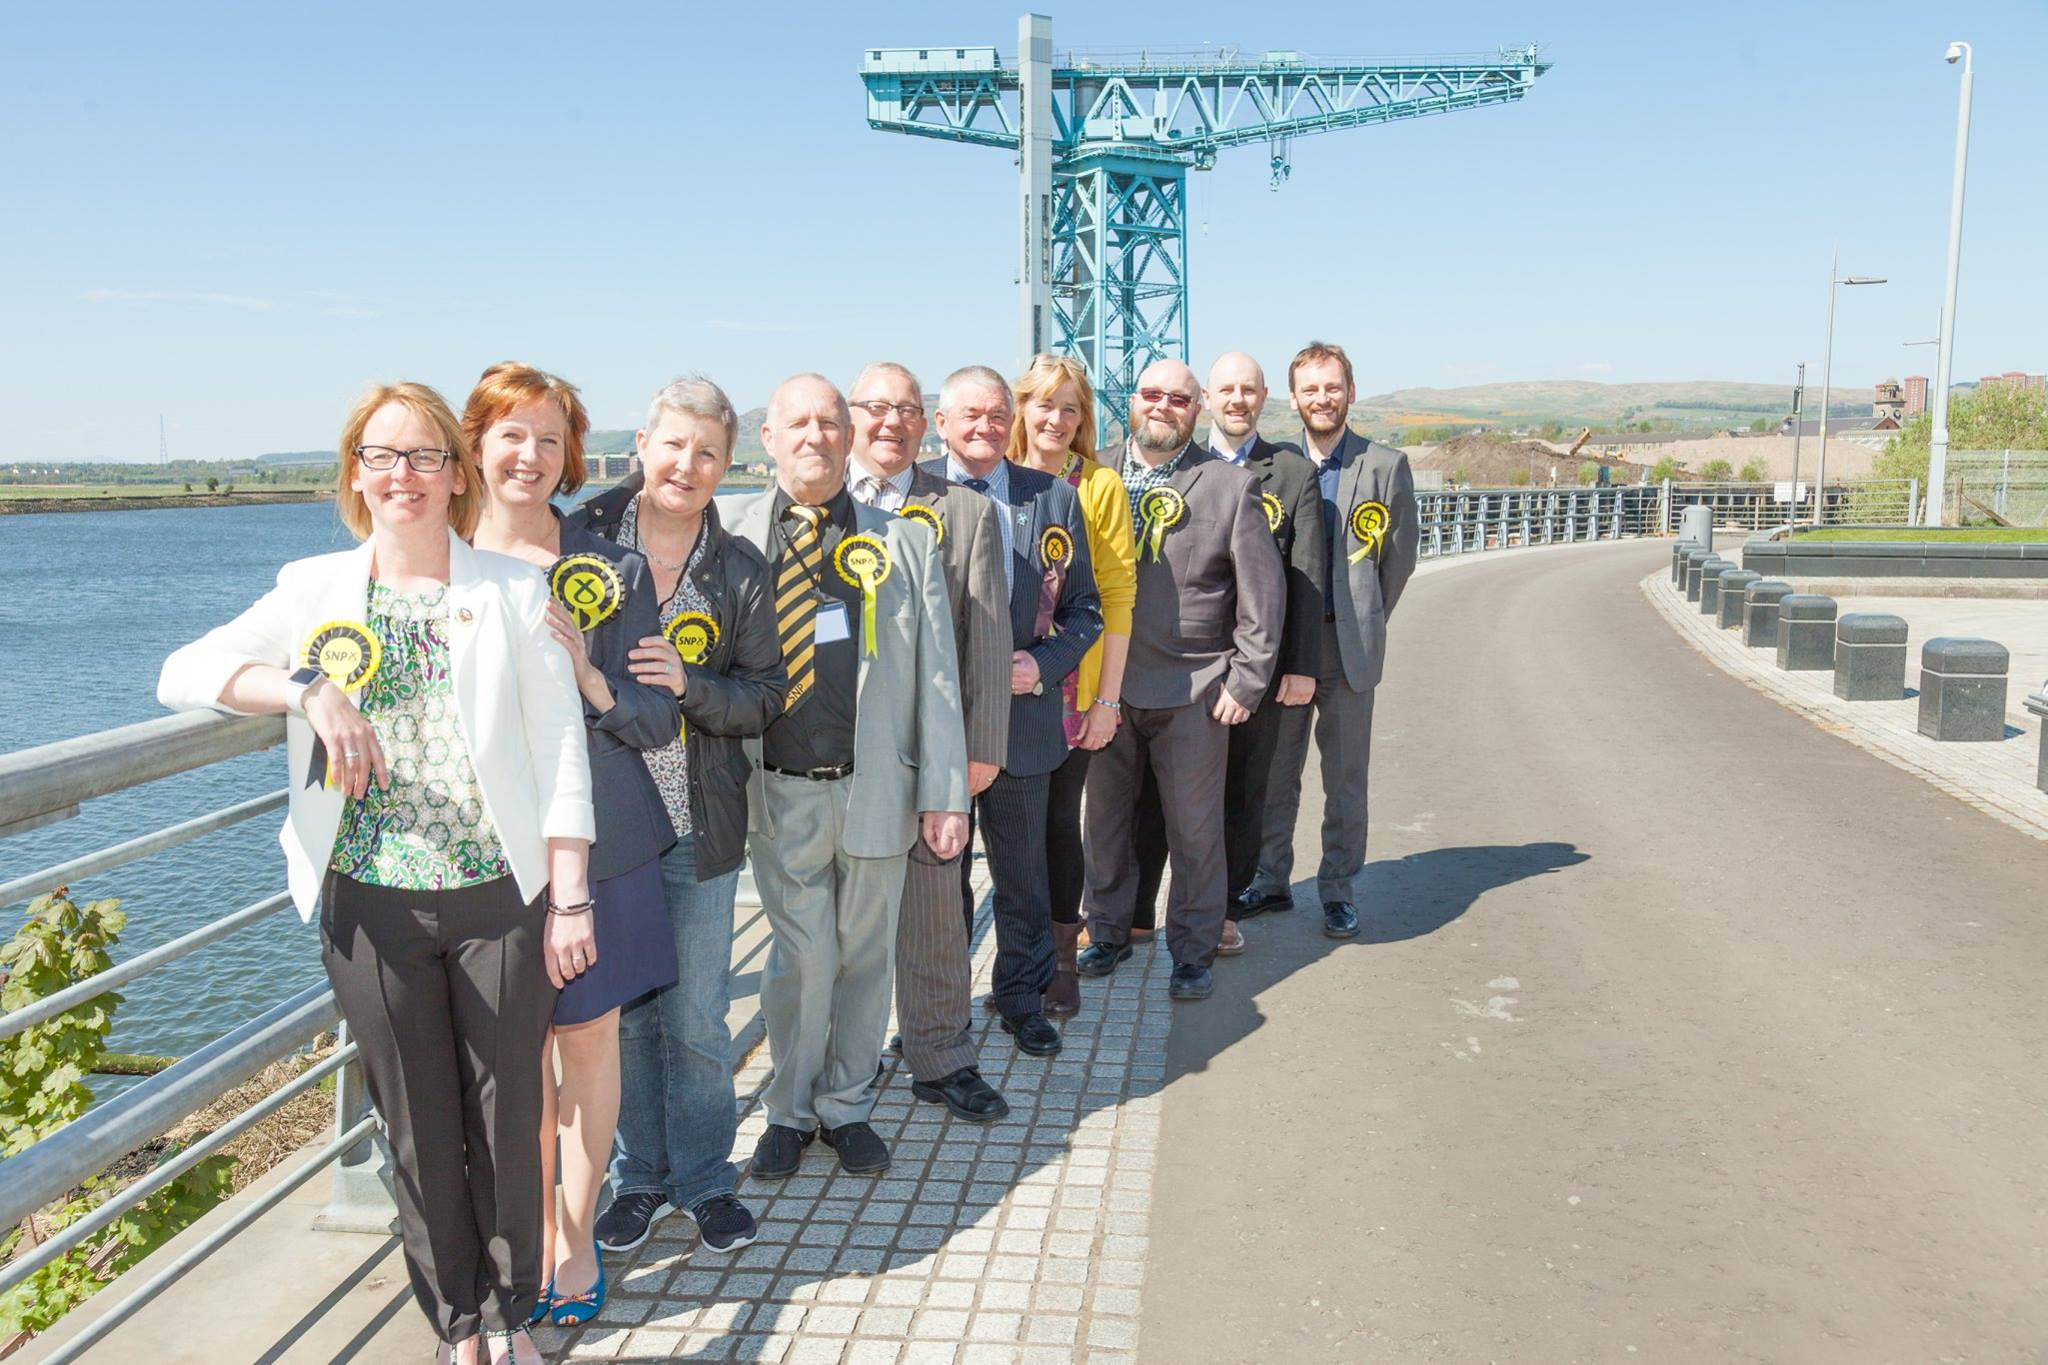 DEMOCRACY AND OPEN GOVERNMENT ARE ANATHEMA TO SNP IN WEST DUNBARTONSHIRE